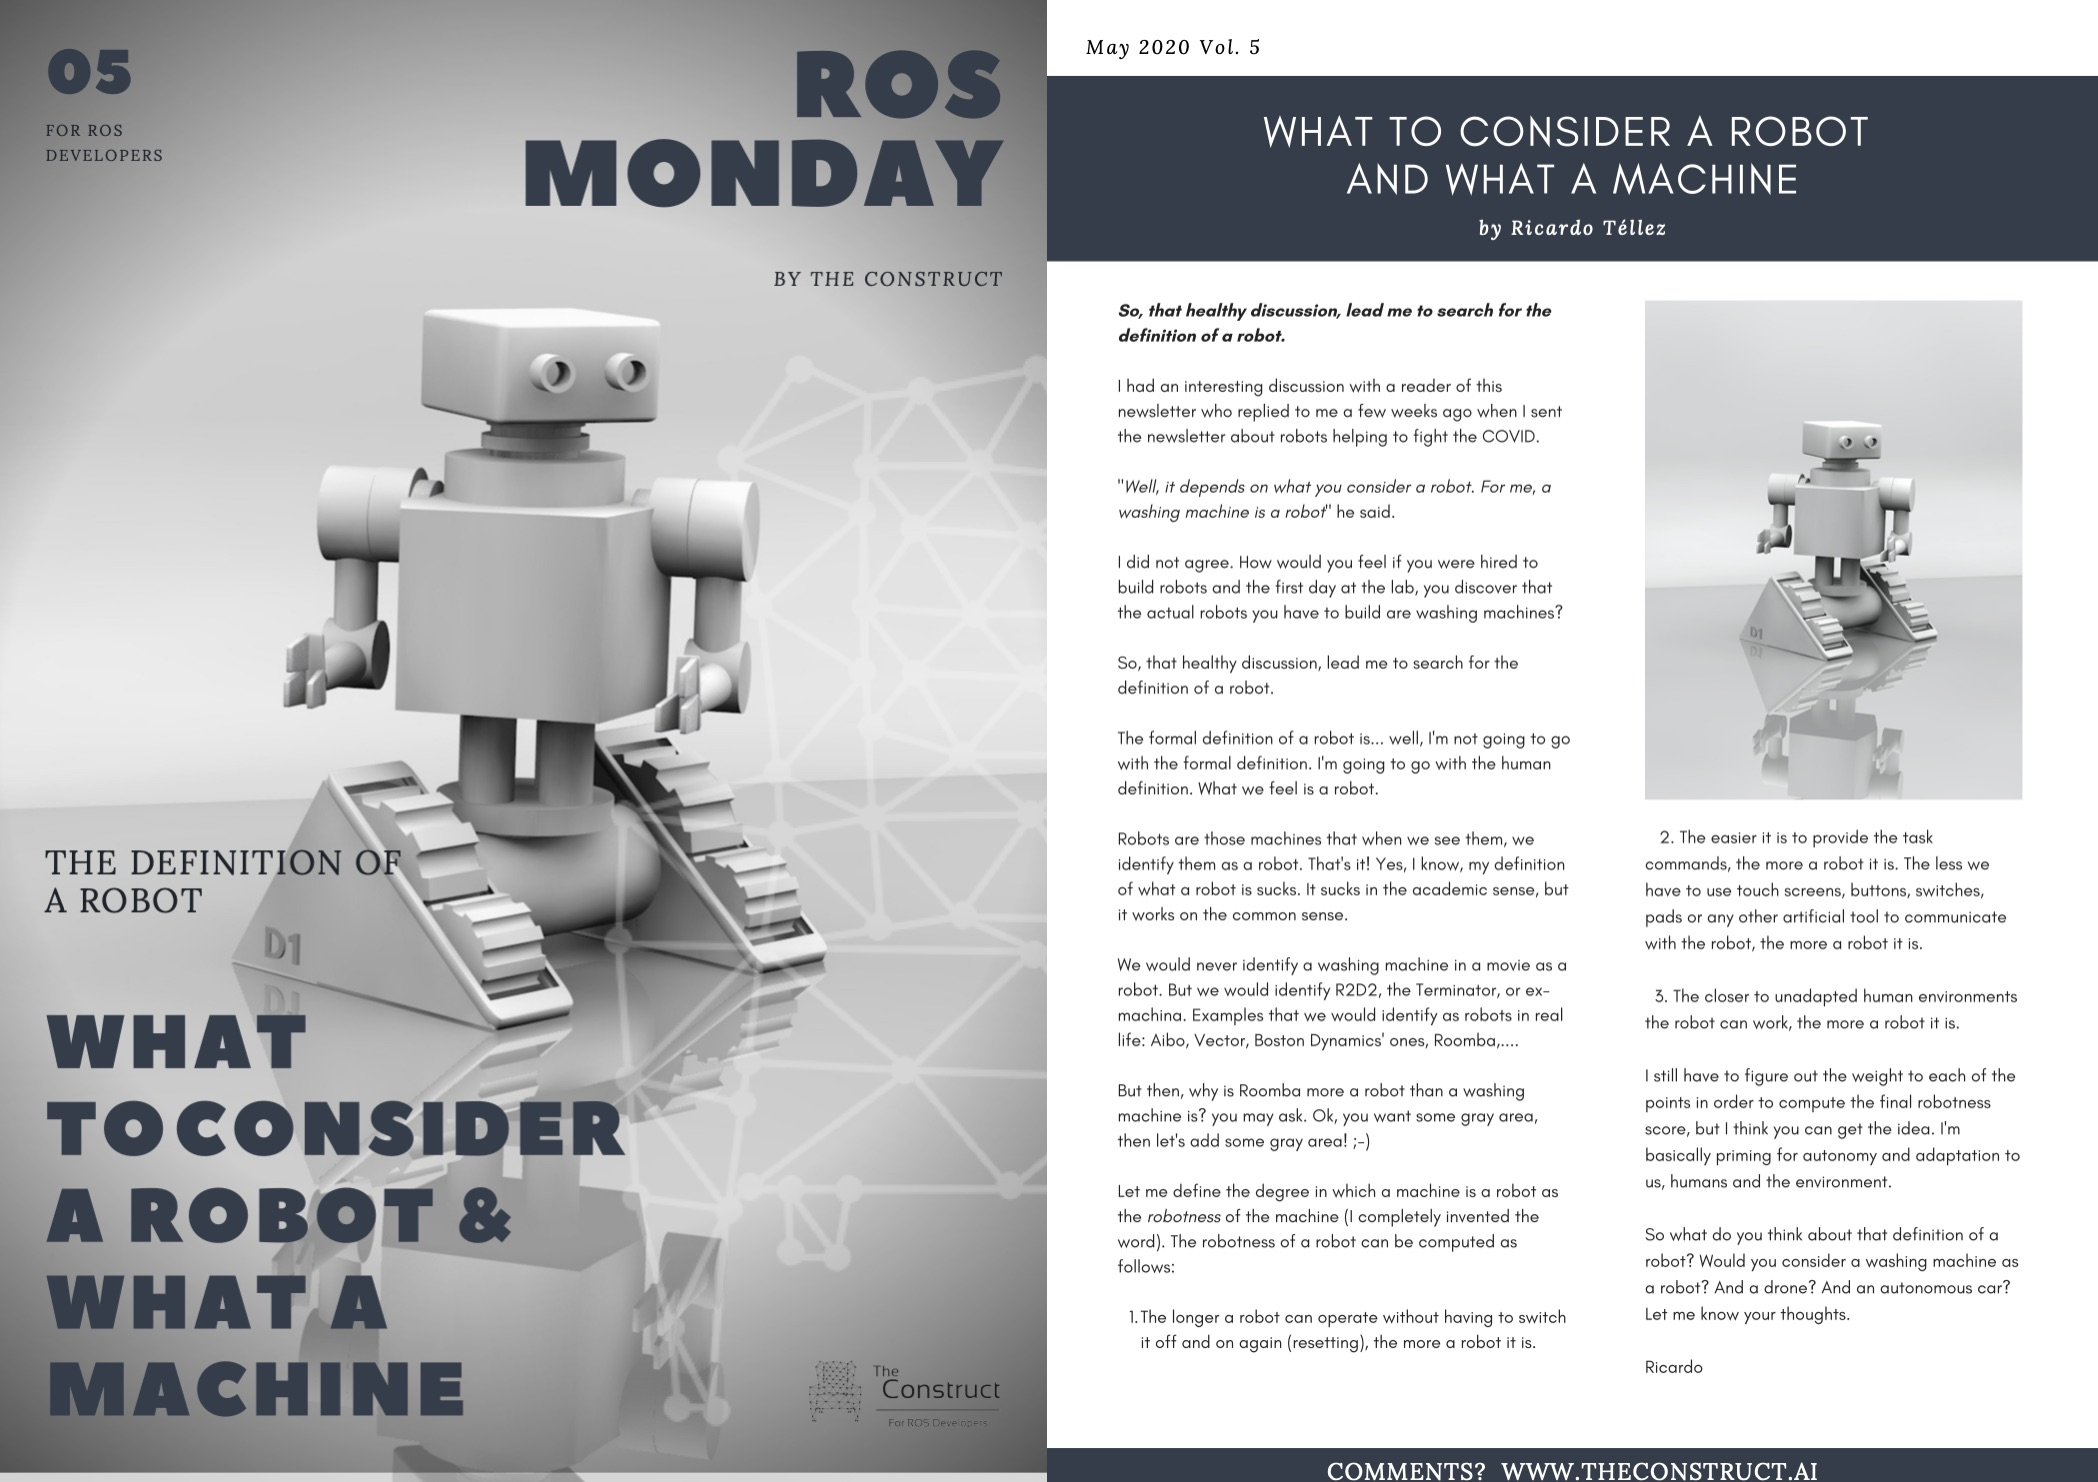 ROS Monday Vol.5 – What to consider a robot and what a machine